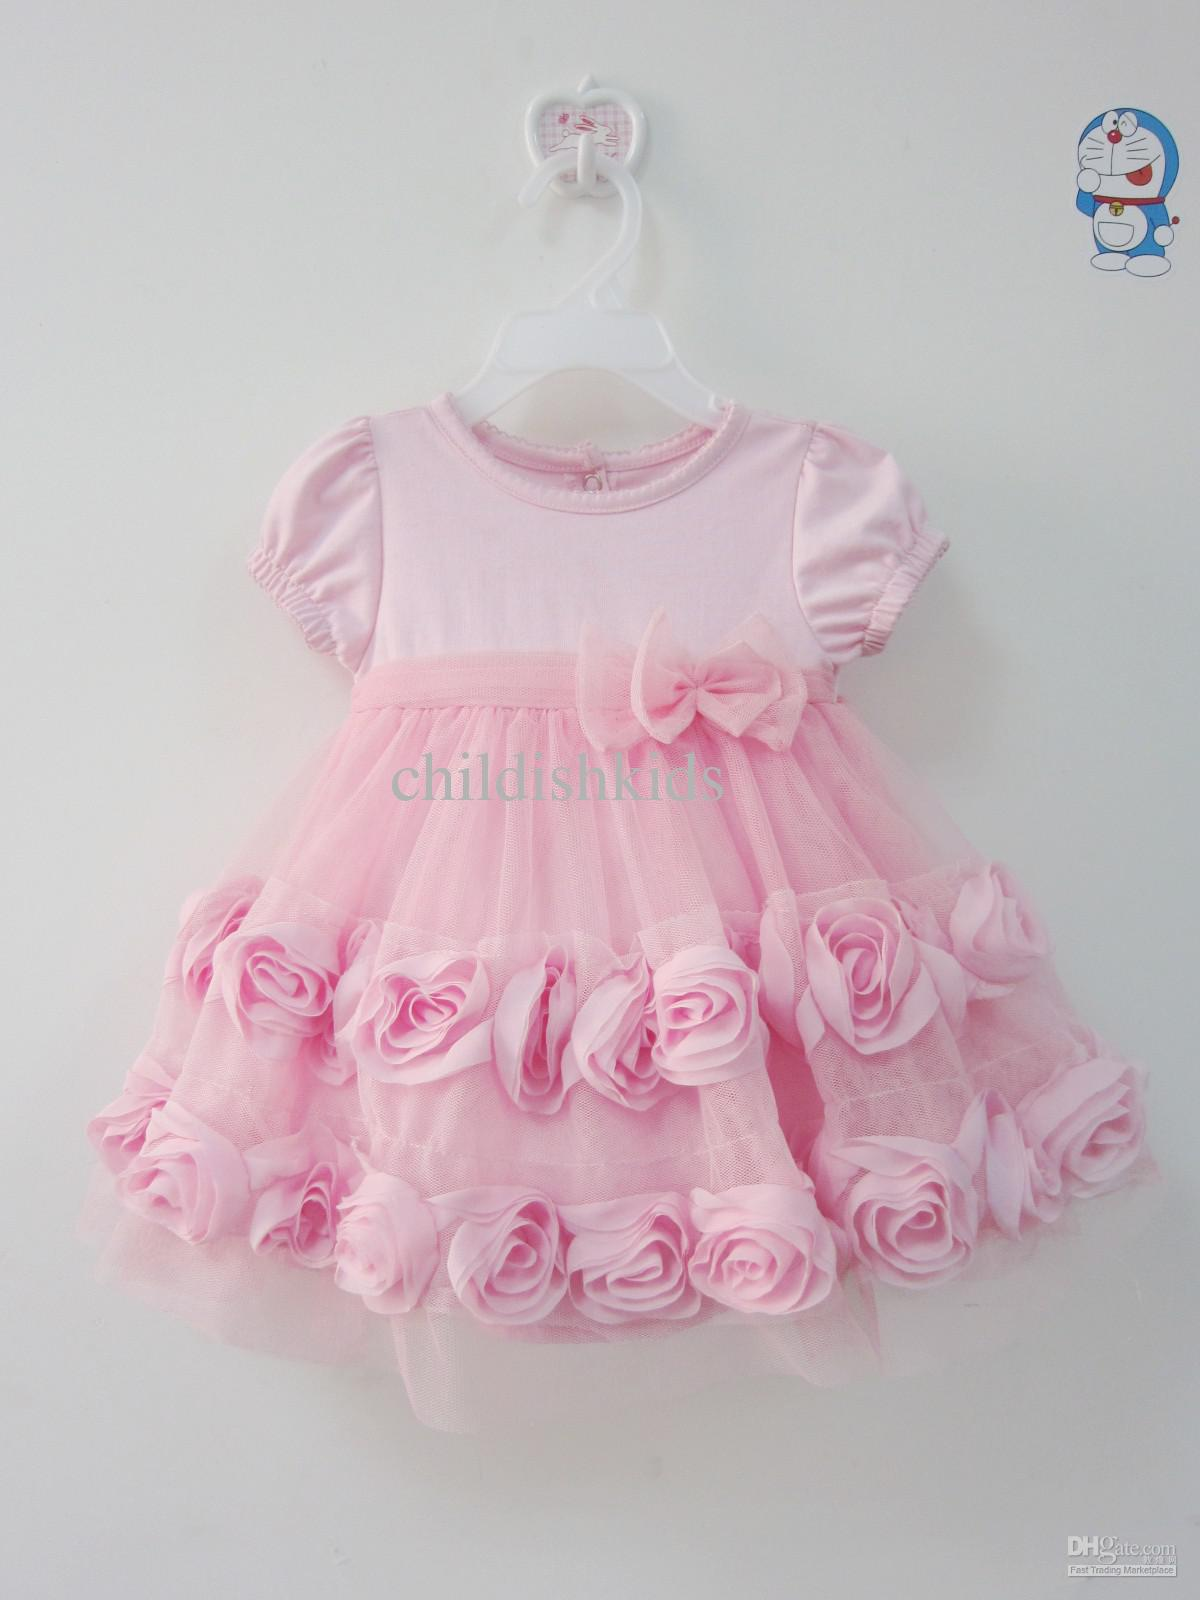 Shop our luxurious collection of designer baby dresses, with something suitable for every occasion. From sunny day dresses for wearing in warmer weather, to stunning special occasion dresses for parties and weddings, find the perfect dress for your little one.